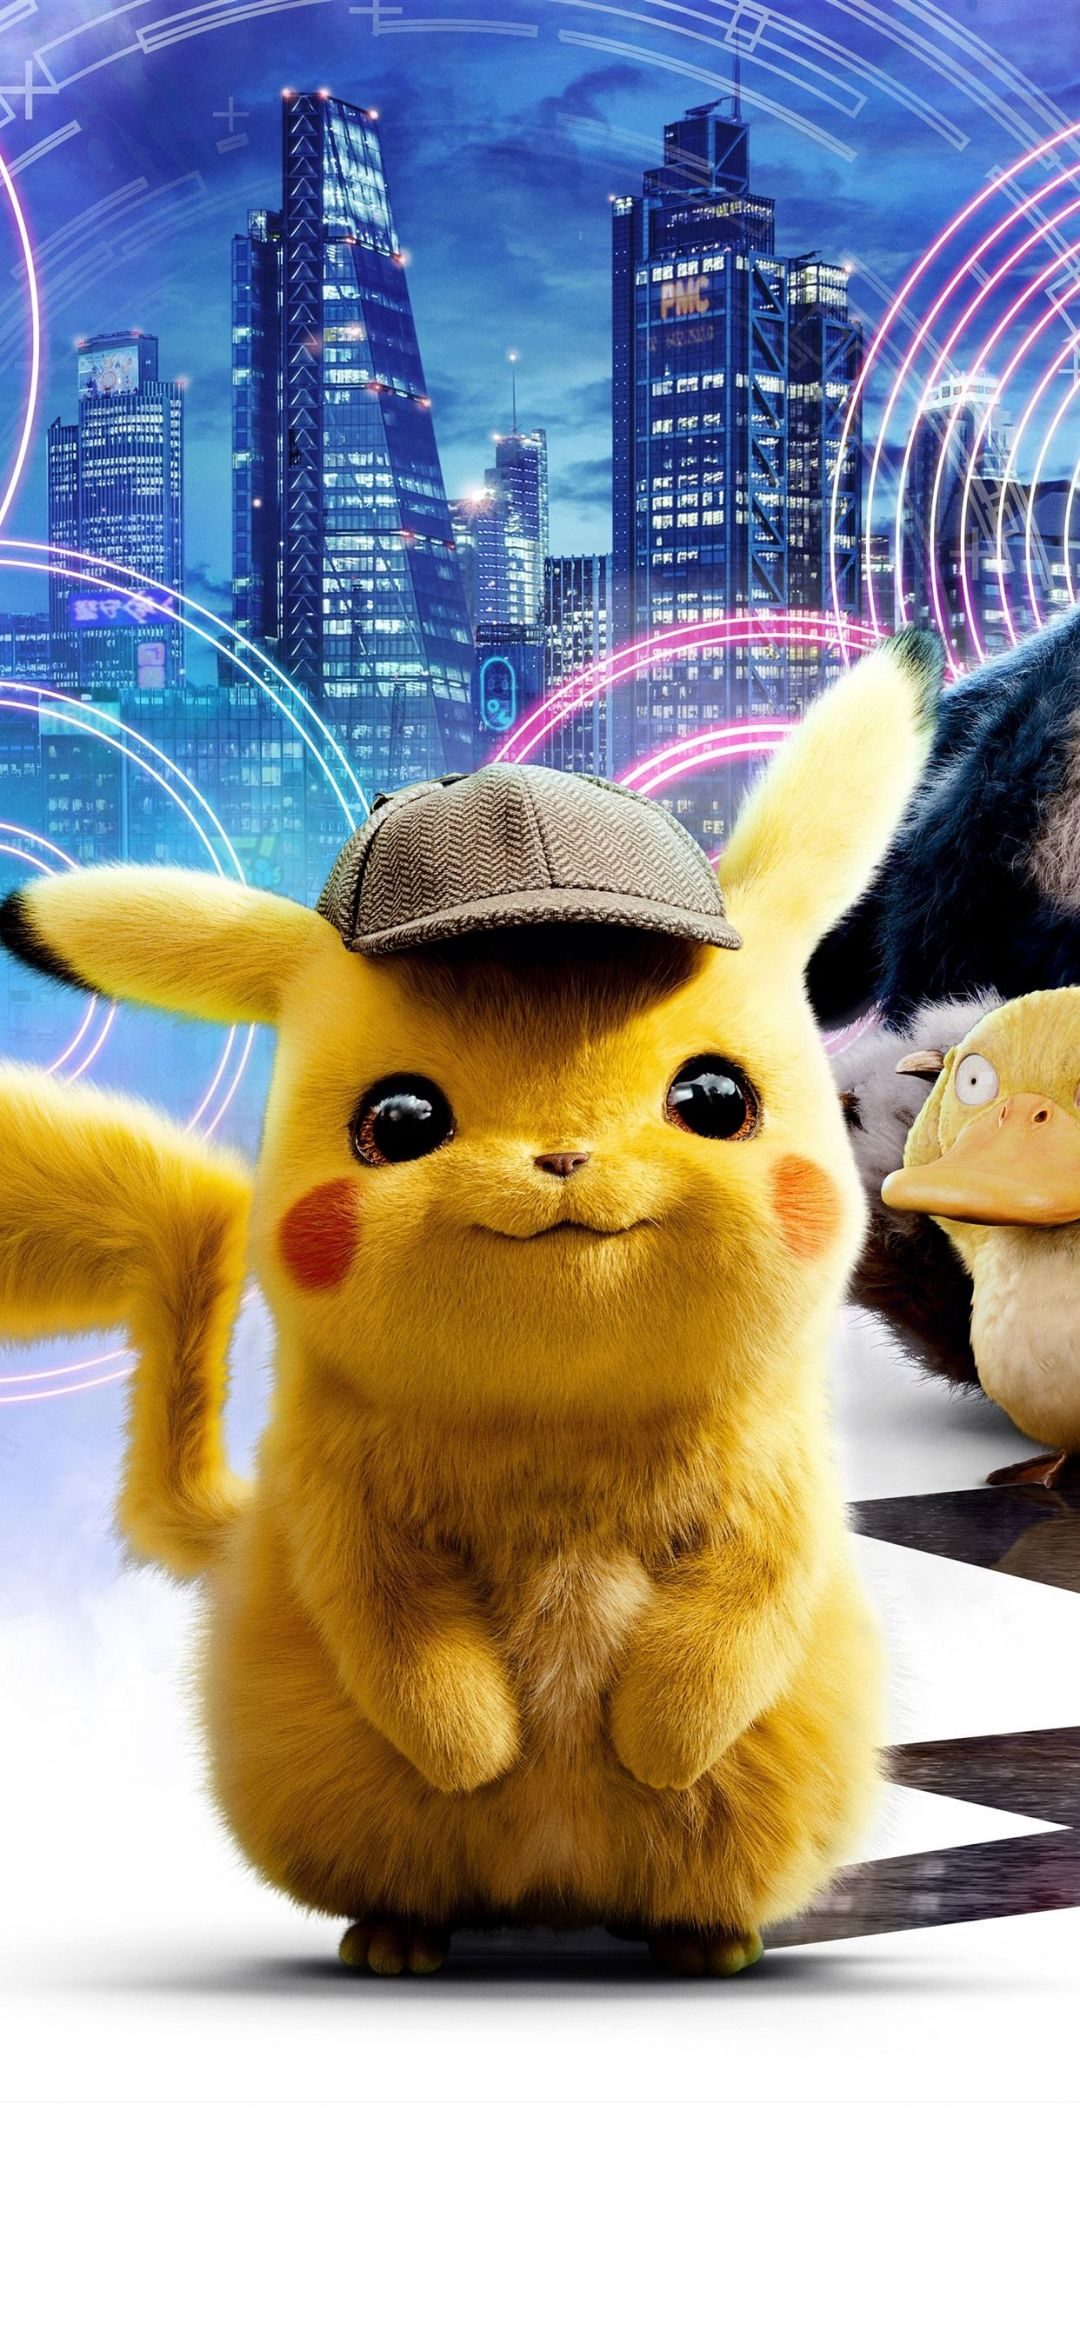 45 Pokemon Detective Pikachu Android Iphone Desktop Hd